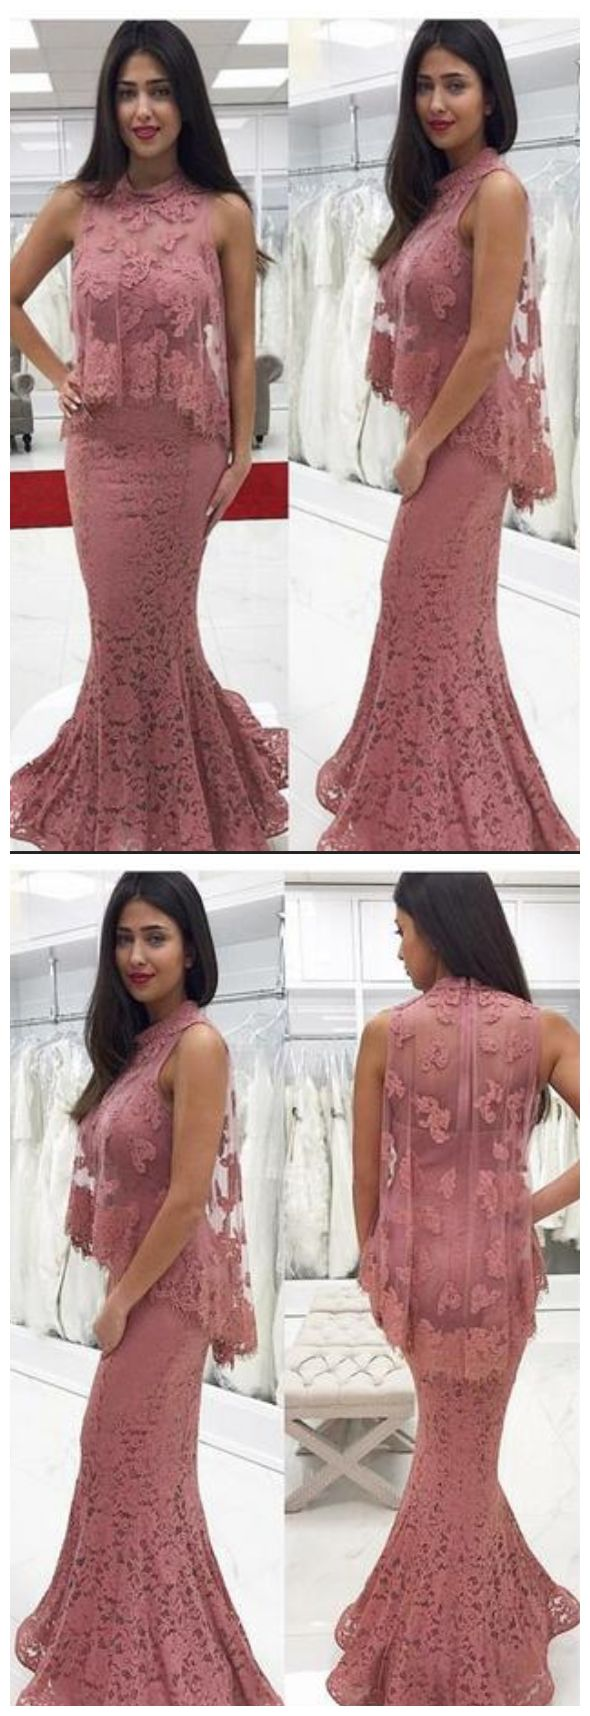 Lace Applique Formal Evening Dresses, Party Gown#prom #promdress #dress #eveningdress #evening #fashion #love #shopping #art #dress #women #mermaid #SEXY #SexyGirl #PromDresses